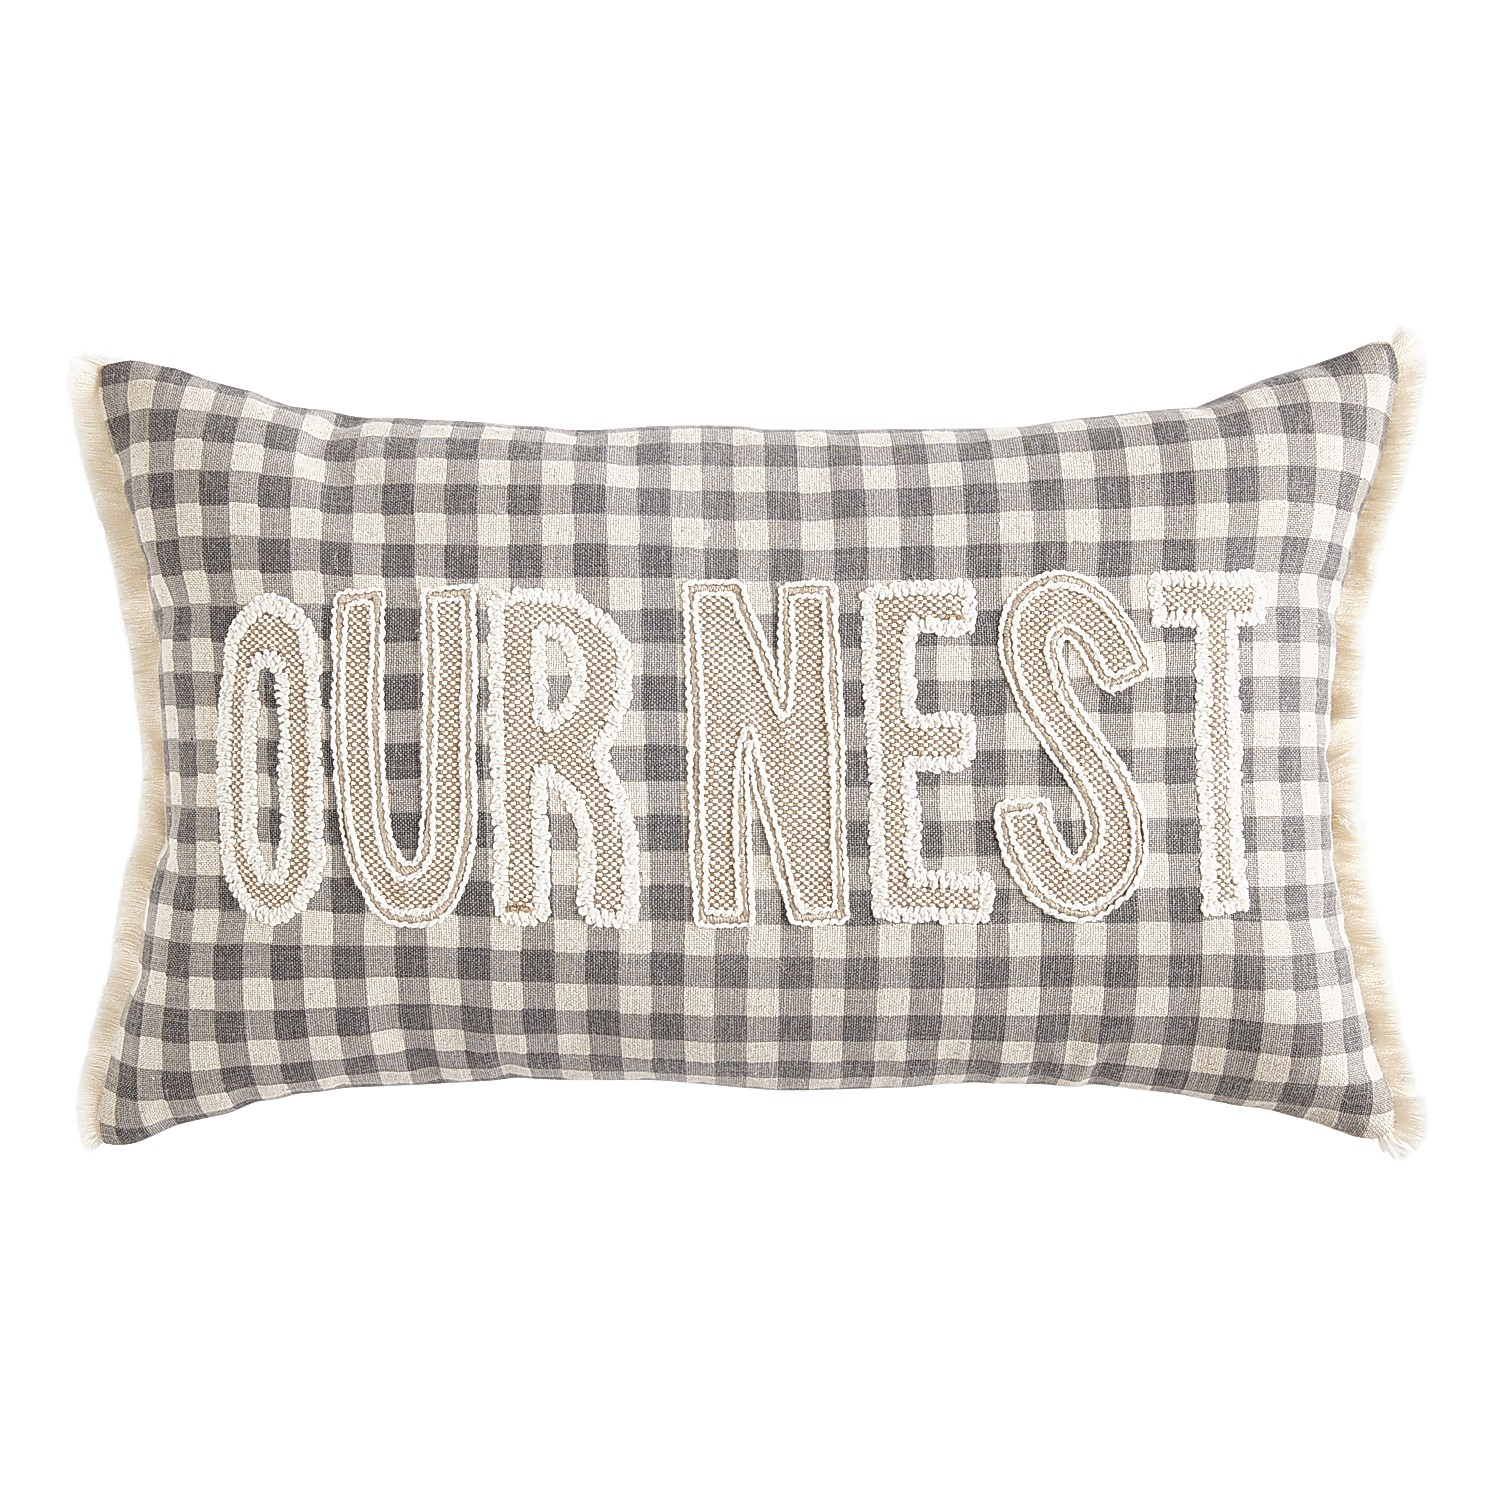 Our Nest Gingham Gray Pillow